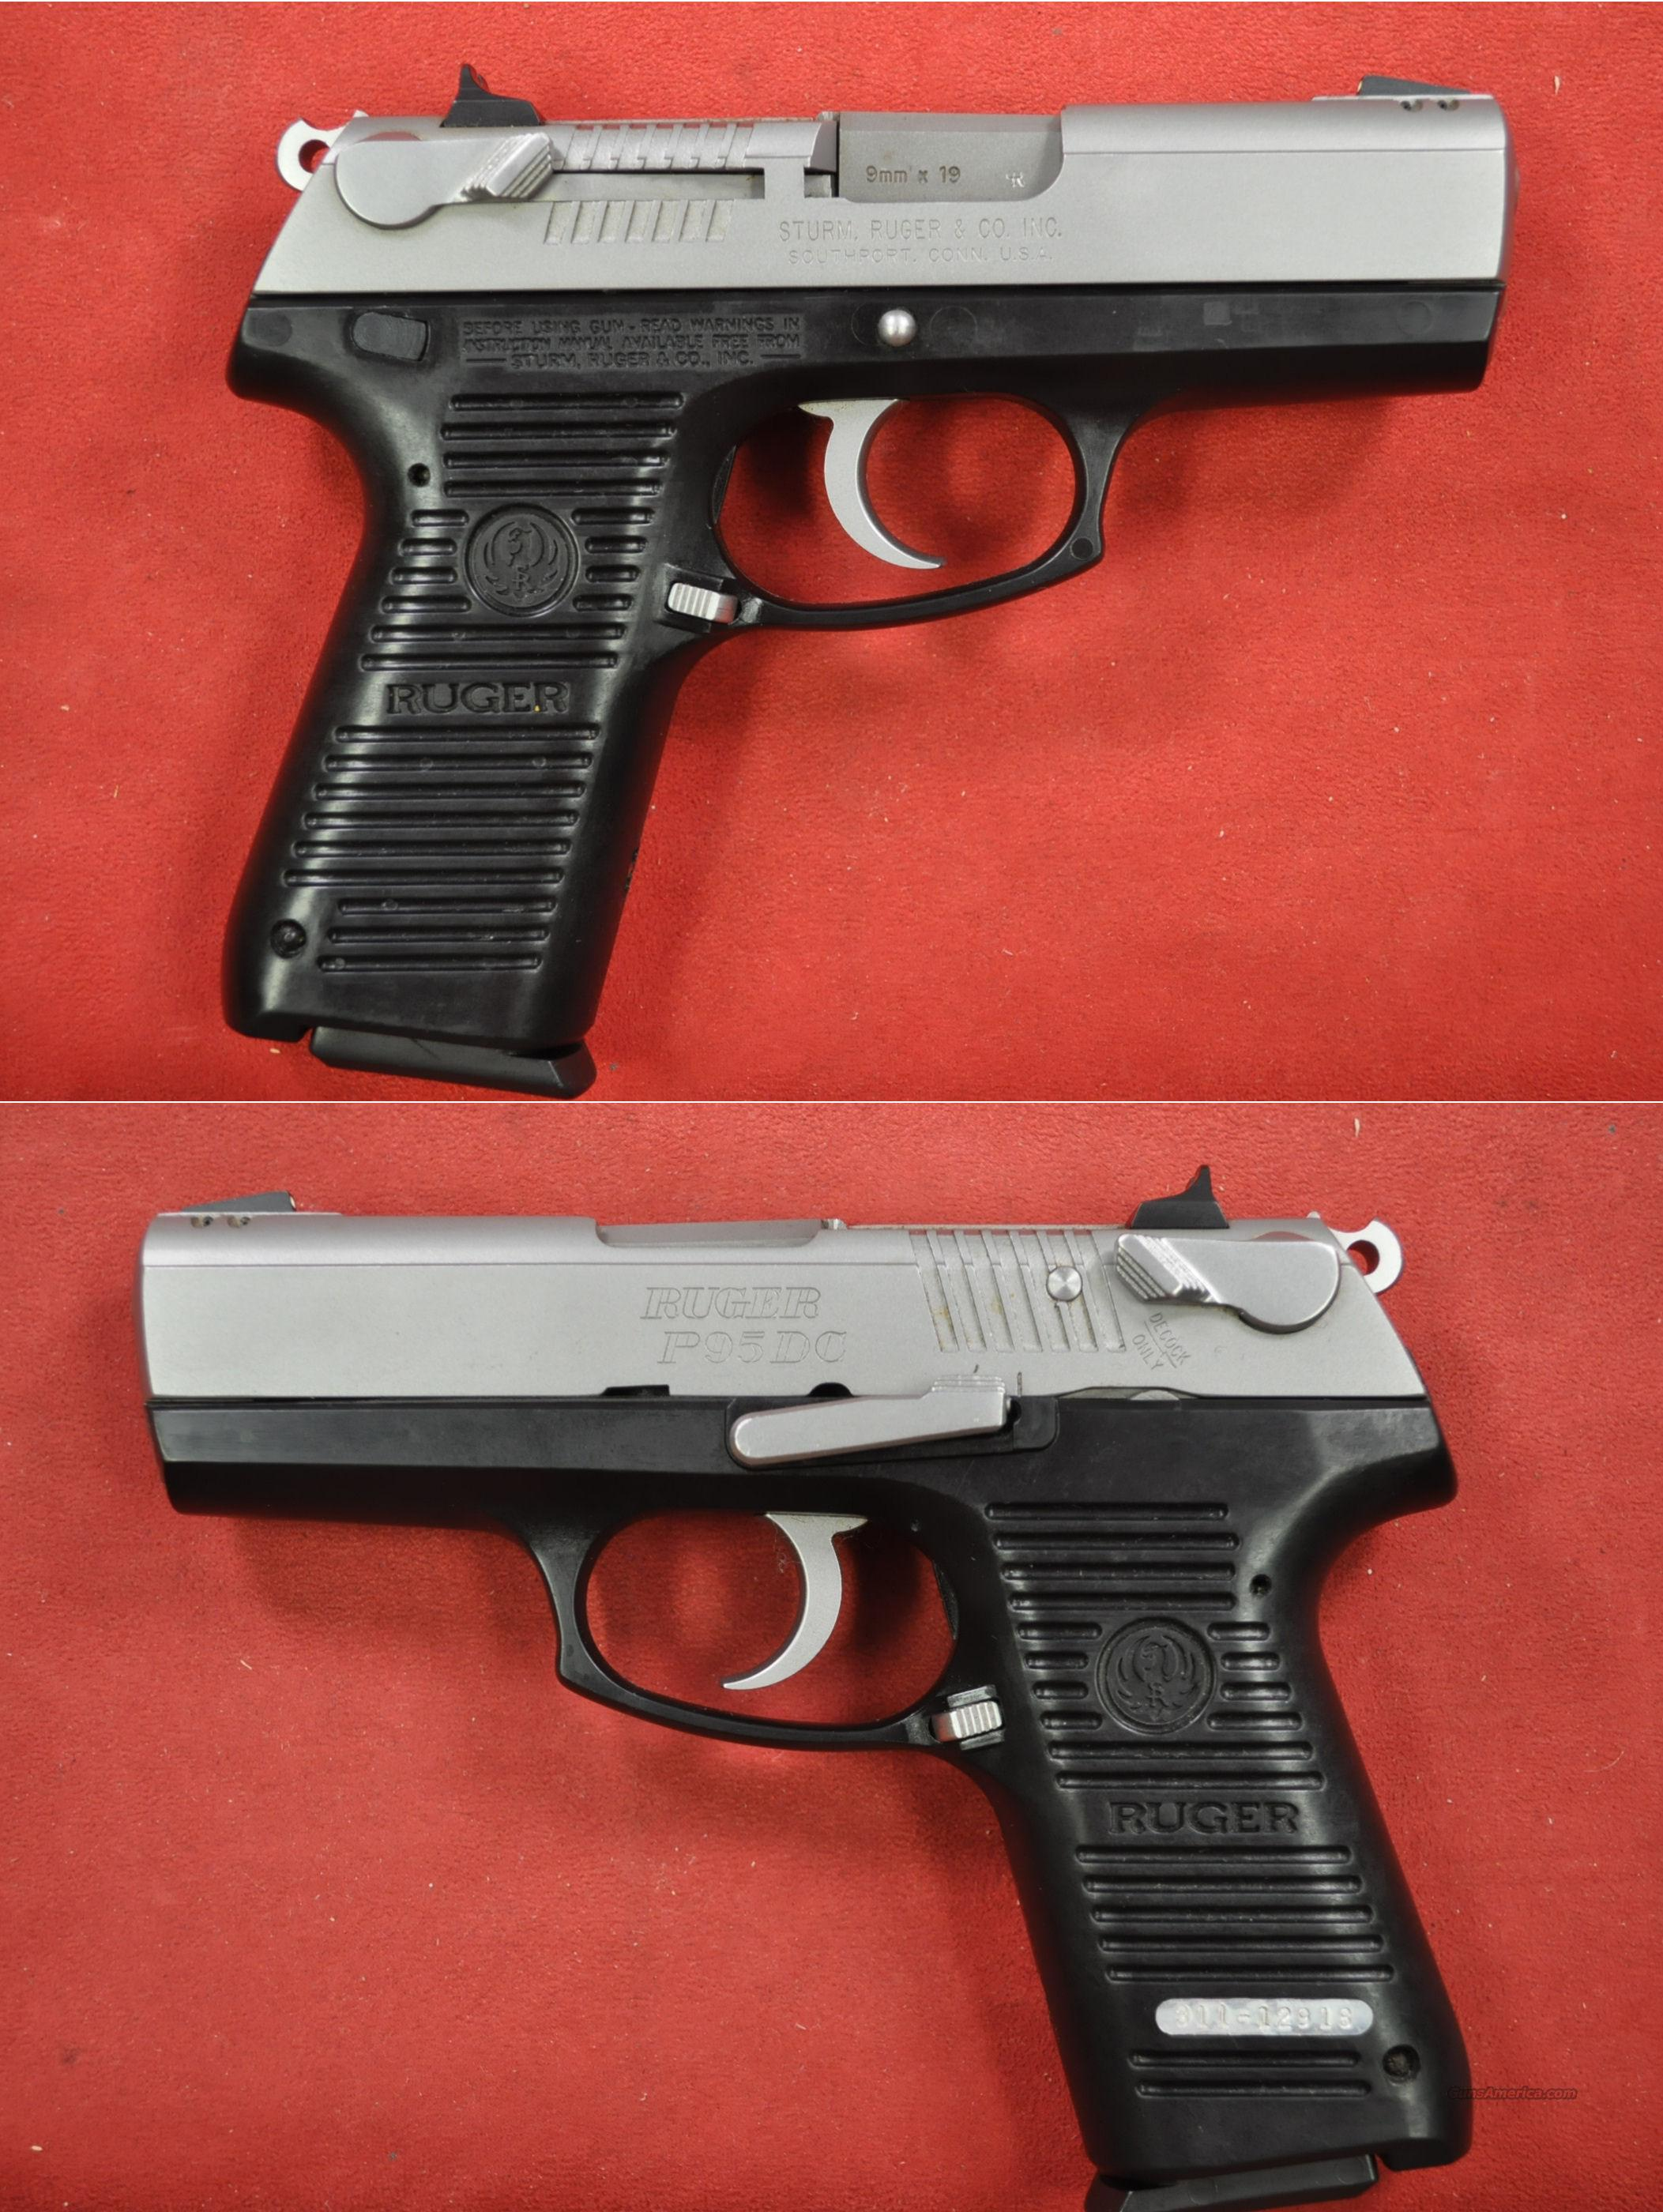 Ruger P95DC 9mm  Guns > Pistols > Ruger Semi-Auto Pistols > P-Series